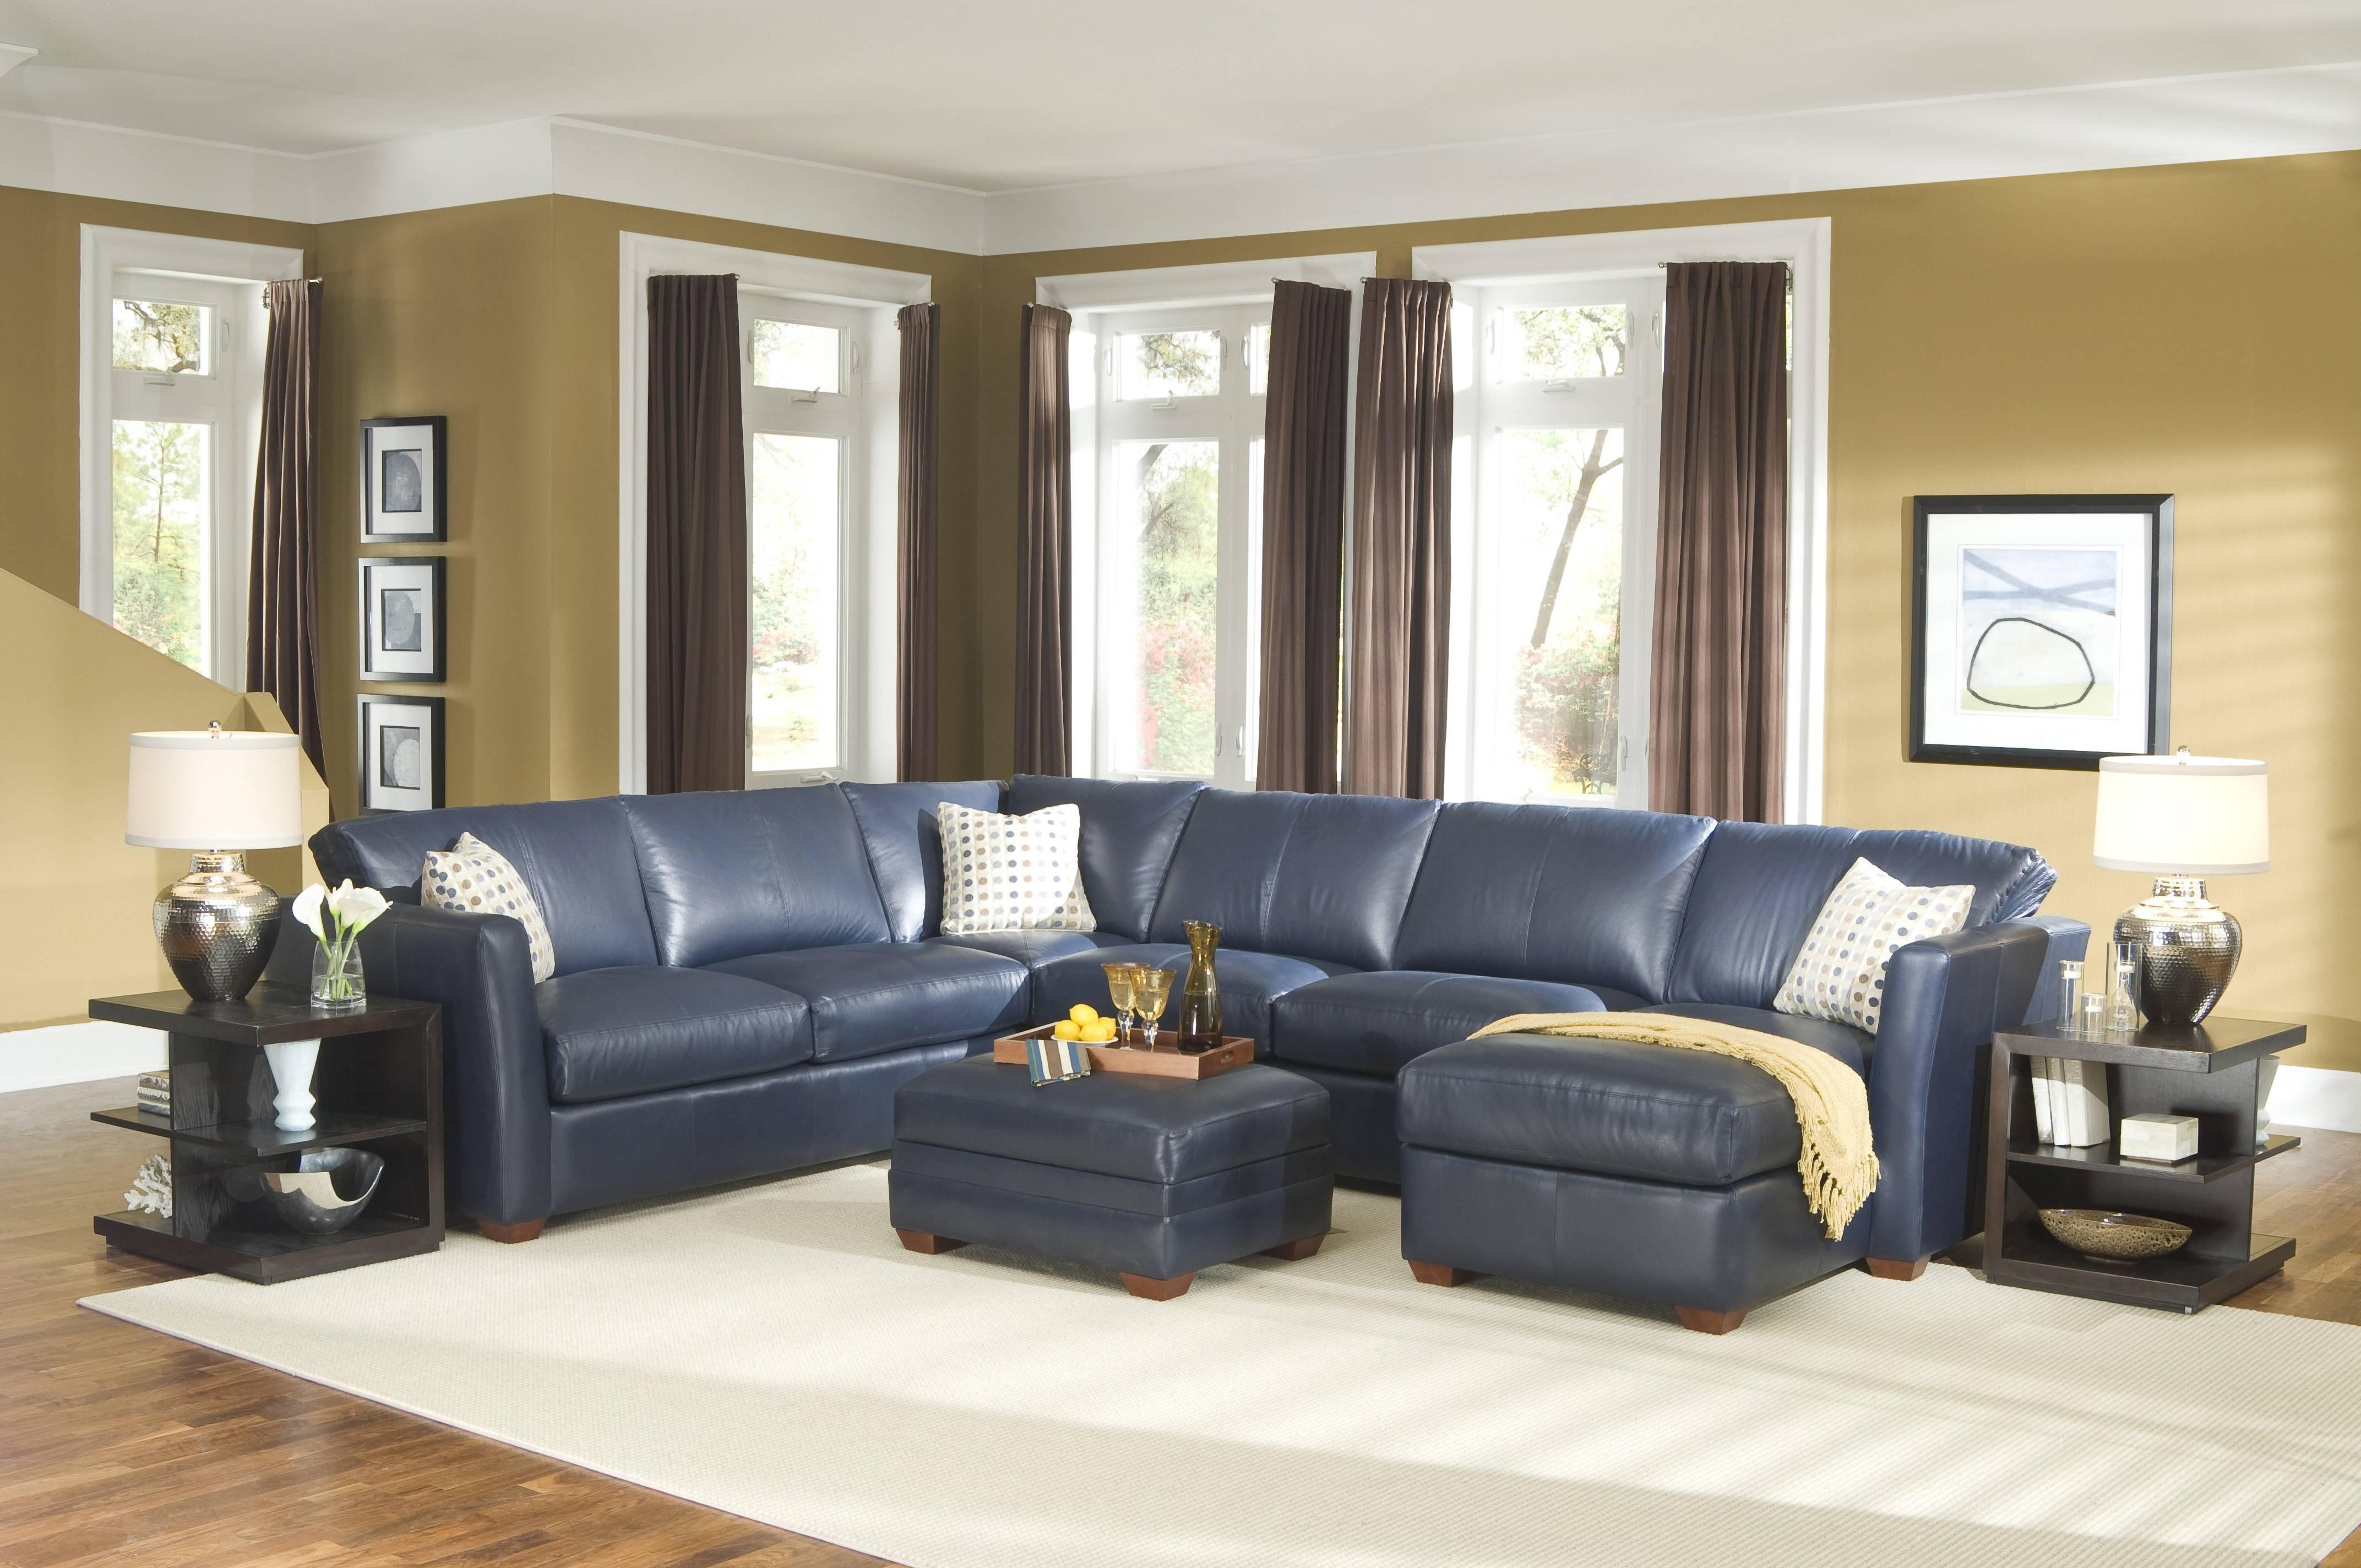 Sofa & Couch: Curved Sectional Sofa | Blue Sectional Sofa regarding Blue Leather Sectional Sofas (Image 13 of 15)